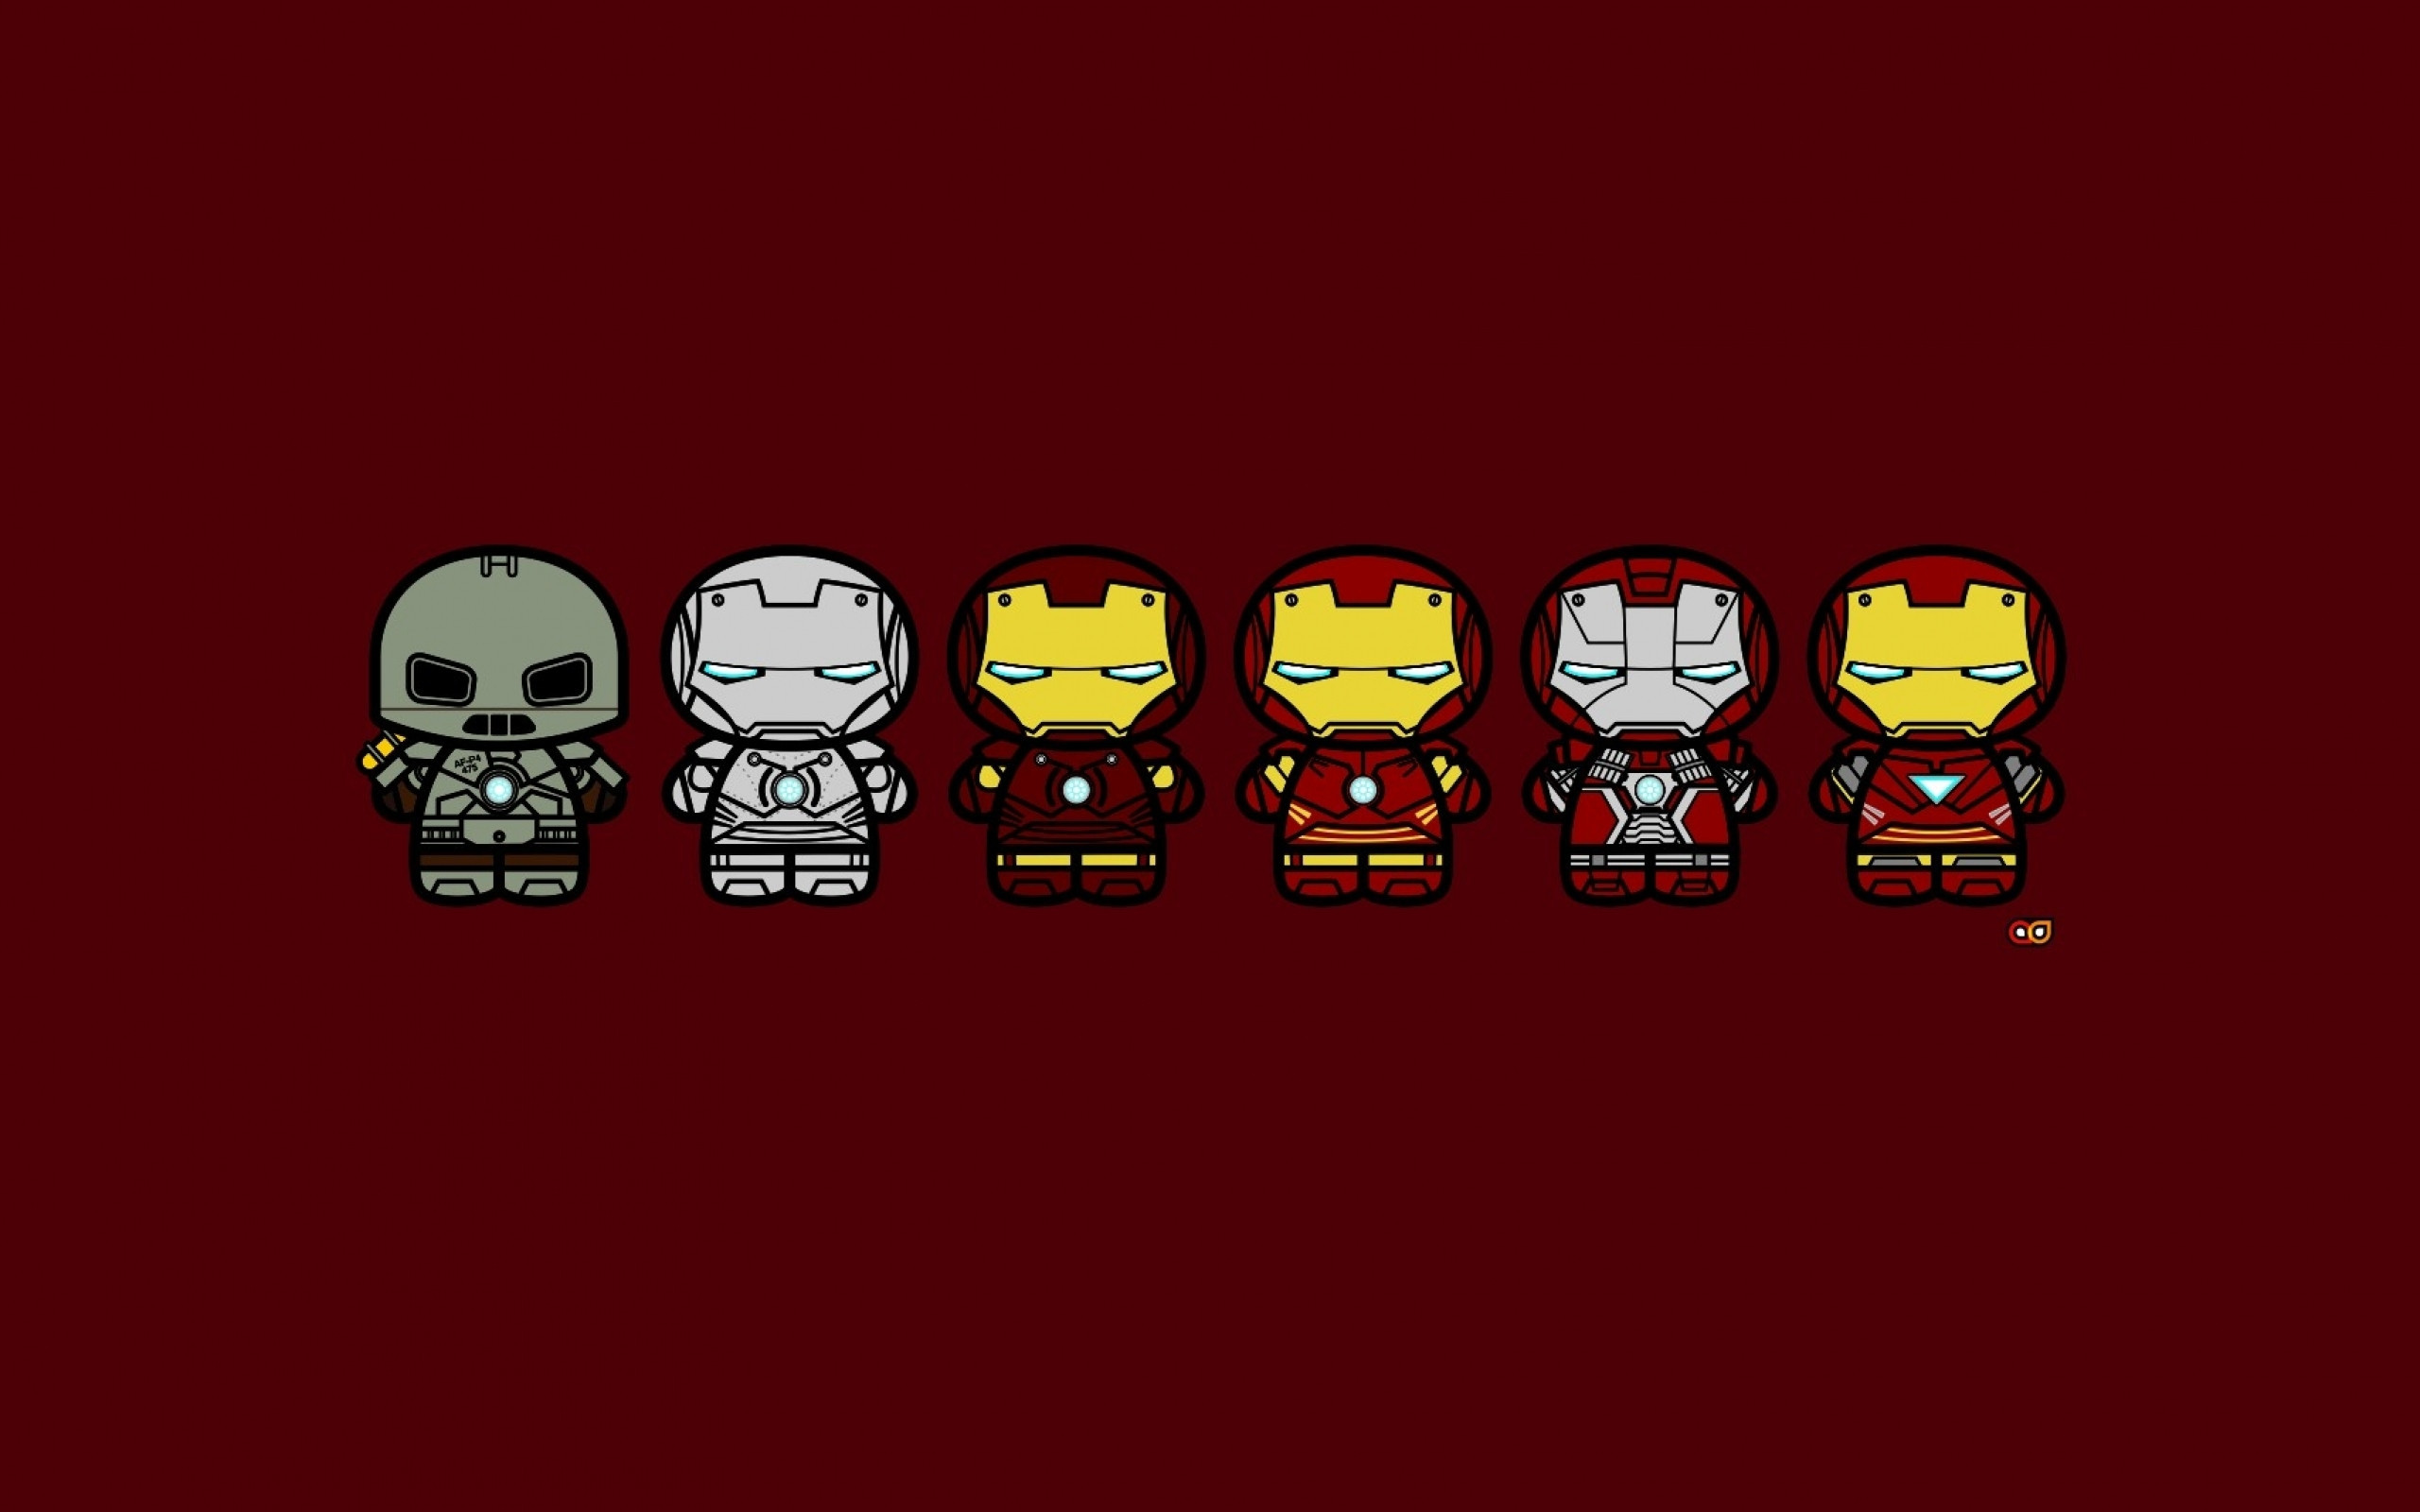 2560x1600 Ironman - Suit Evolution (x-post from wallpapers) ...